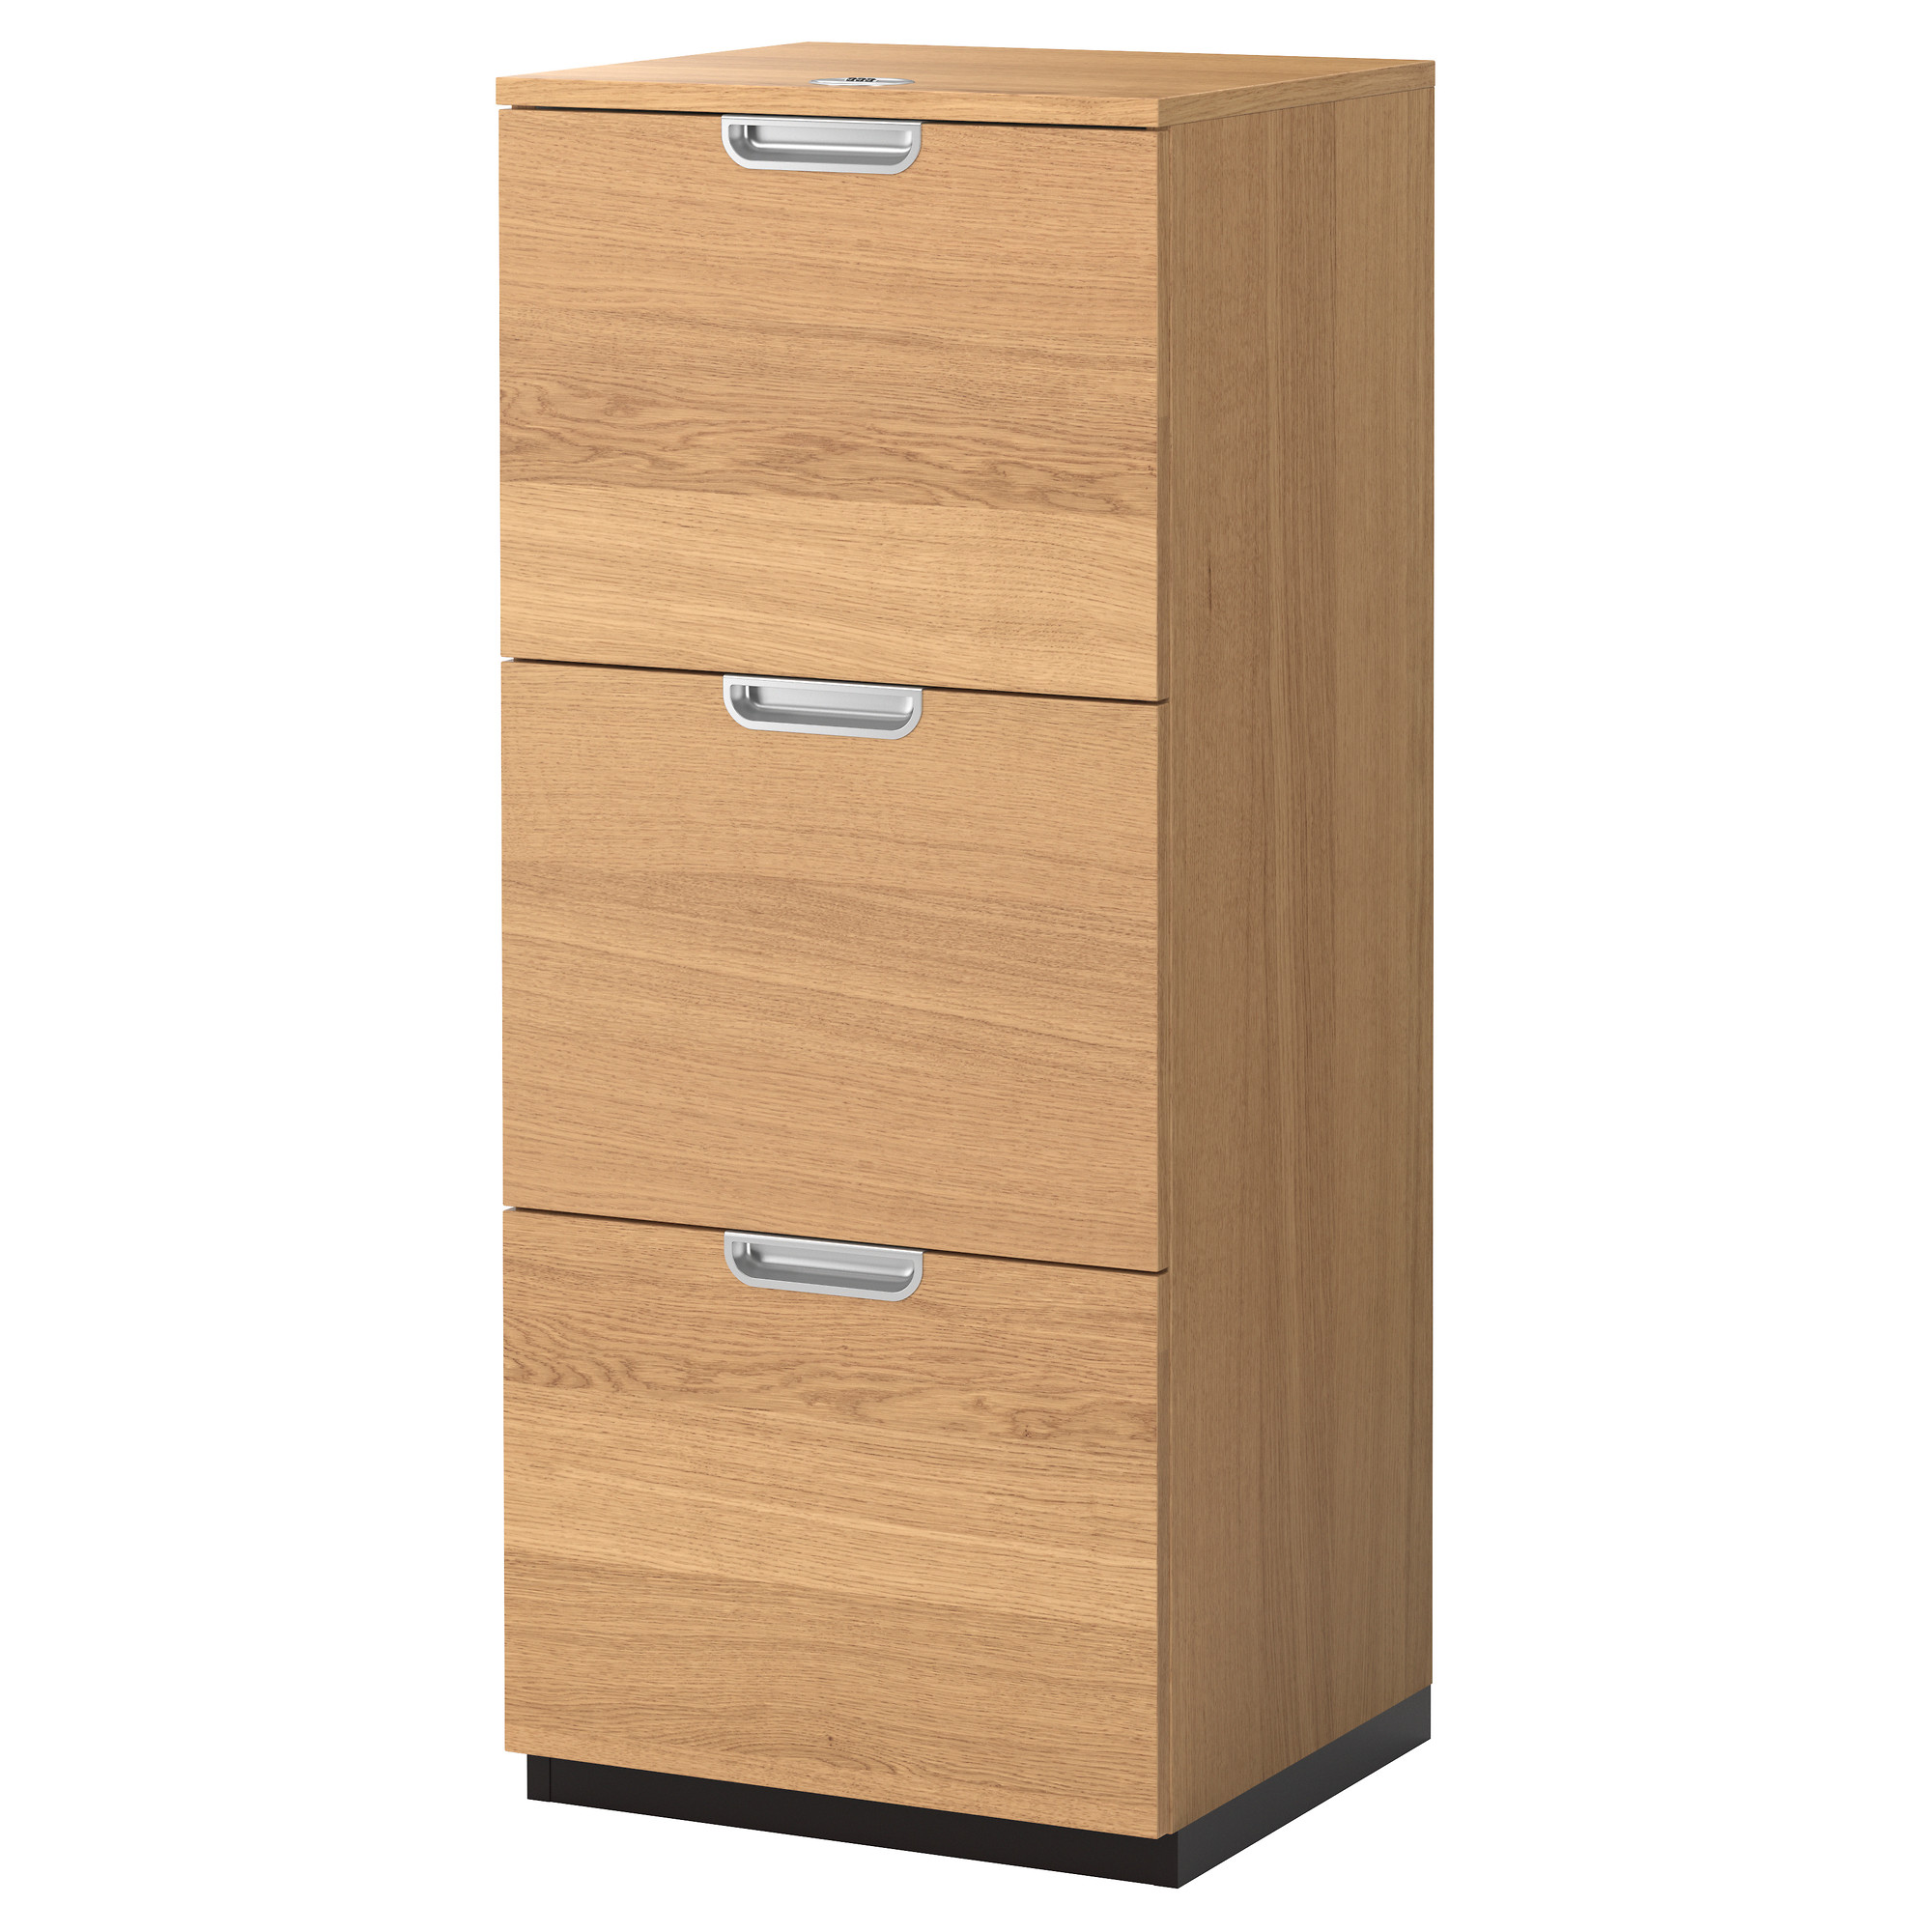 Wood file cabinet ikea homesfeed for Wood cabinets